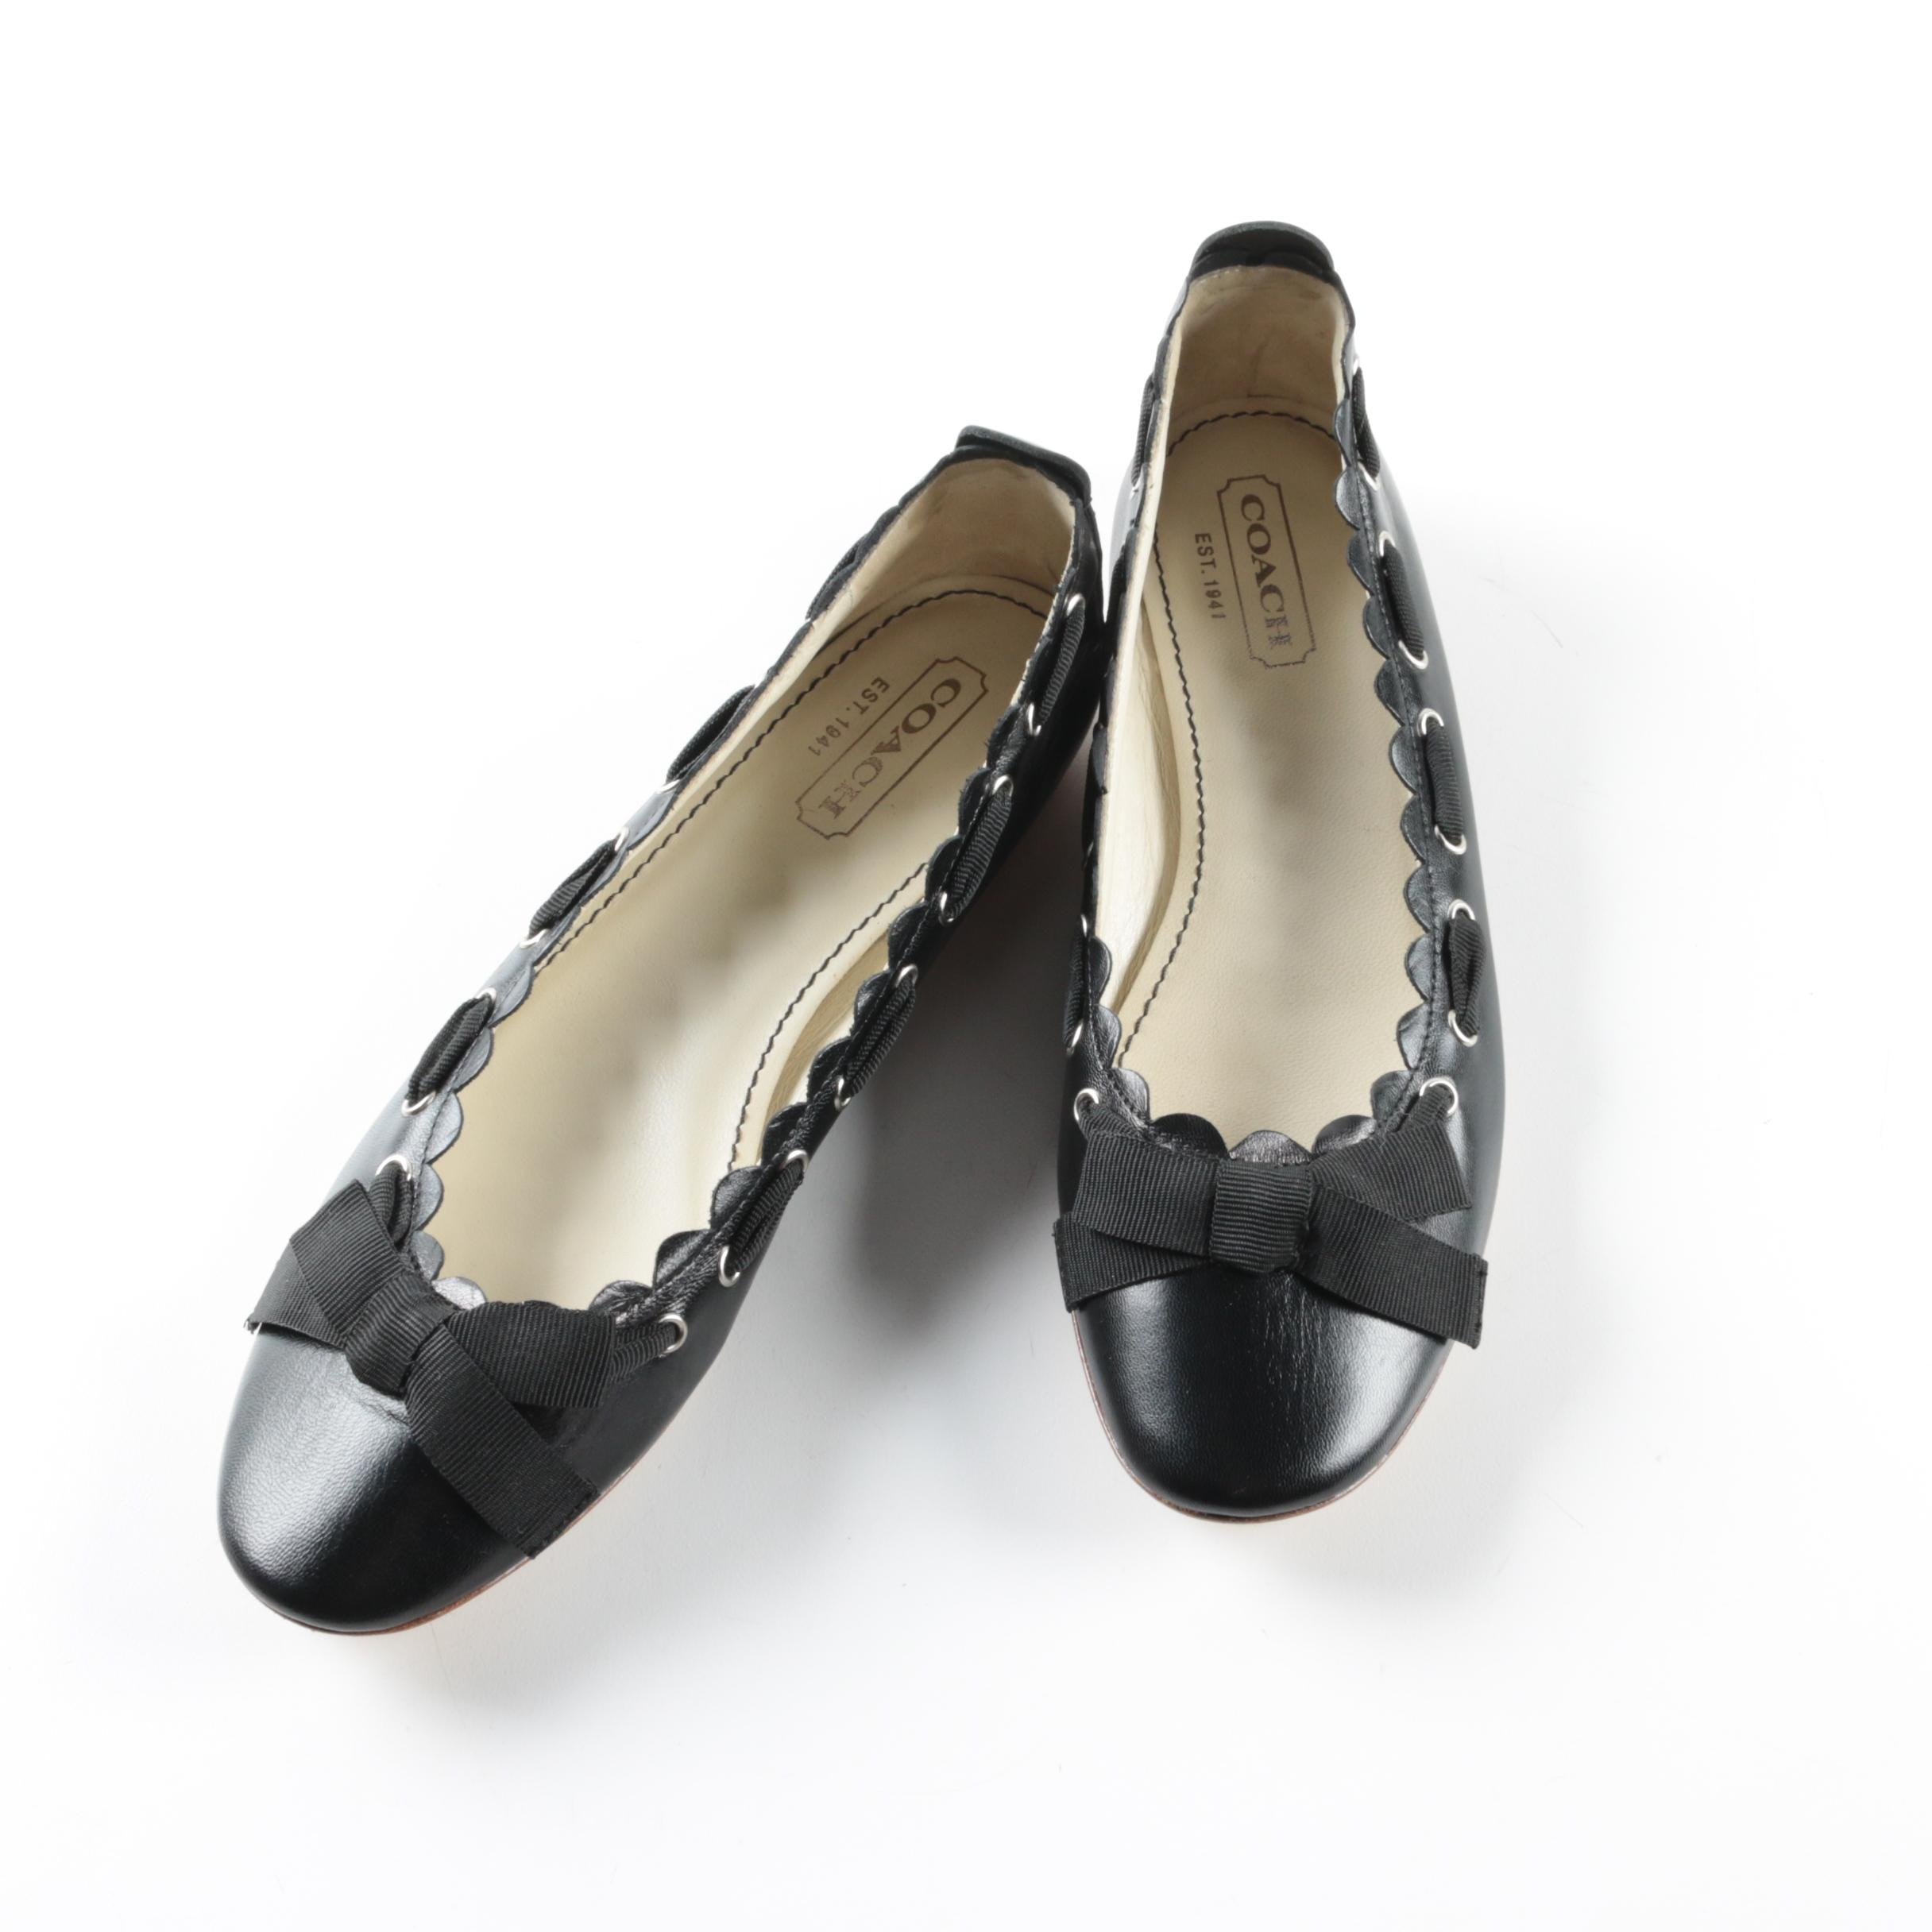 Coach Tilly Scalloped Black Leather Ballet Style Flats